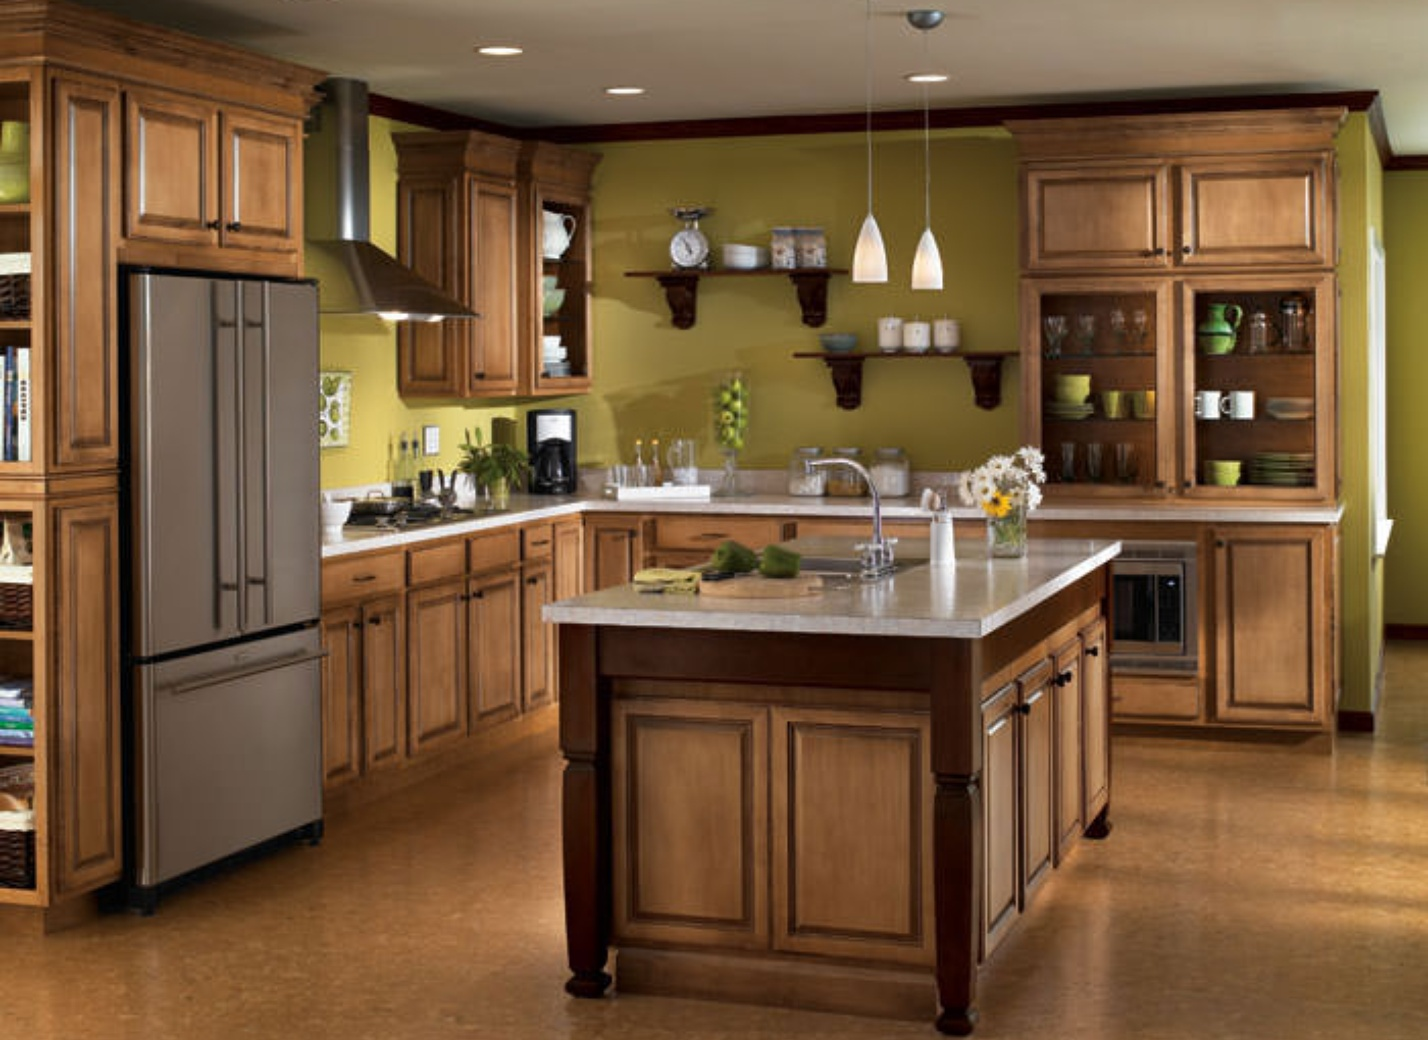 aristokraft kitchen cabinets discount sinks nj alfano renovations